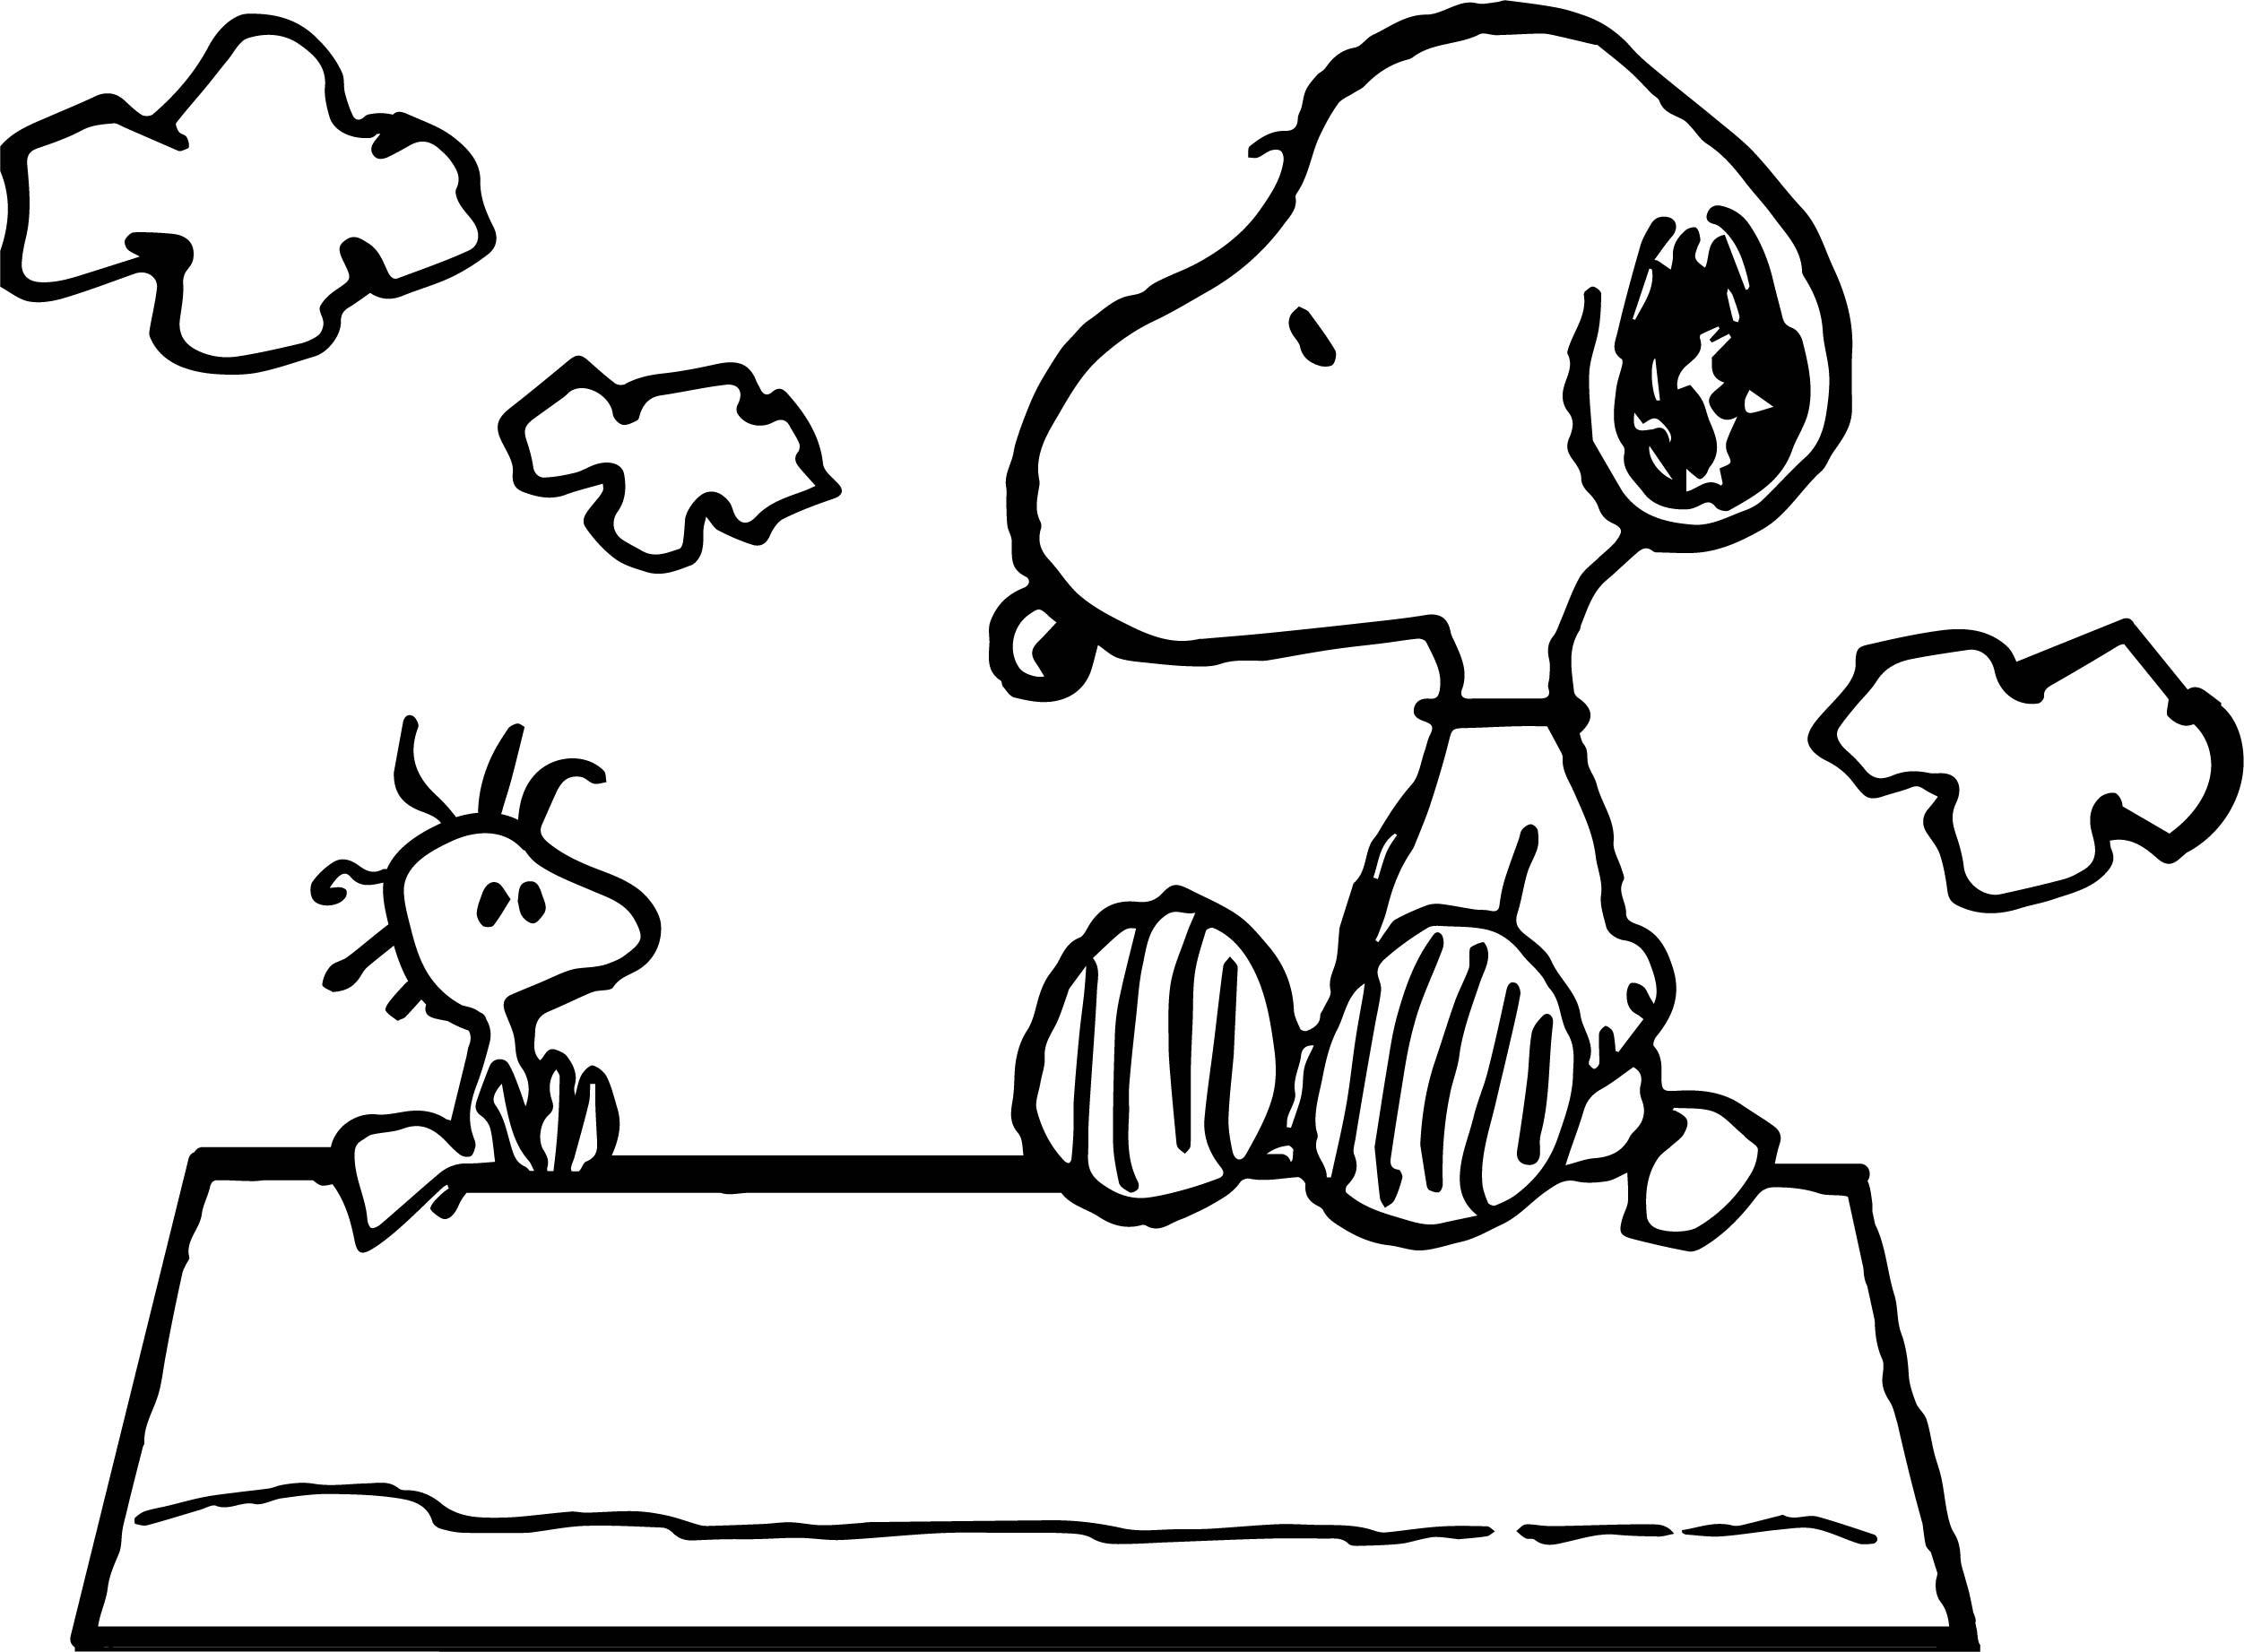 2503x1843 Fascinating Celebrity Image Peanuts Snoopy Woodstock Coloring Page